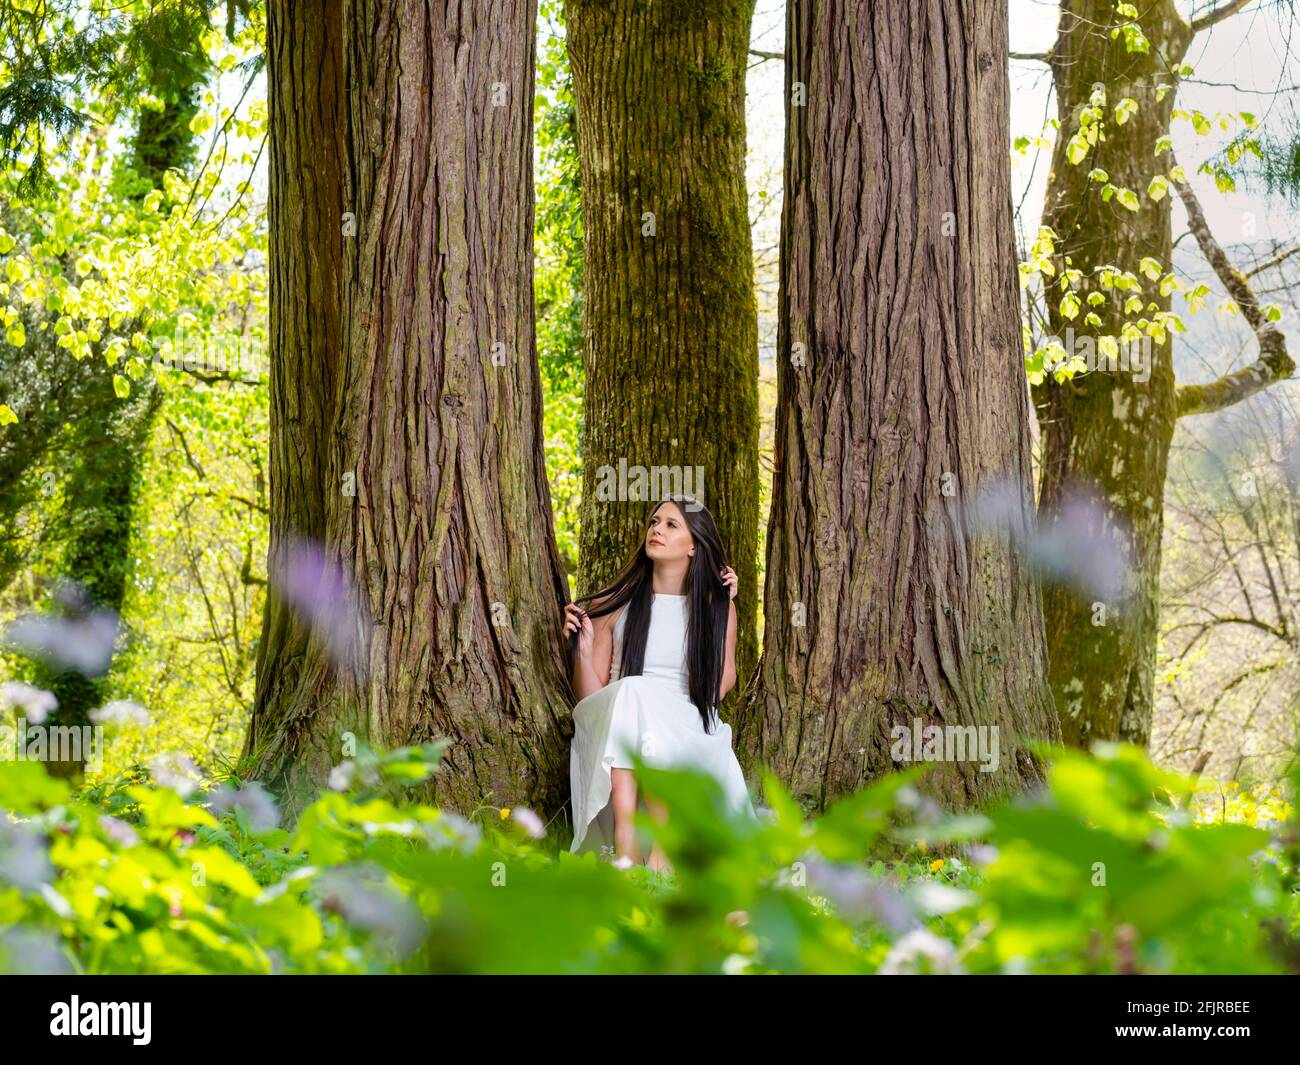 Young woman in nature sitting seated low between amongst big trees facing front frontal view serious looking away dreamy daydreaming Stock Photo